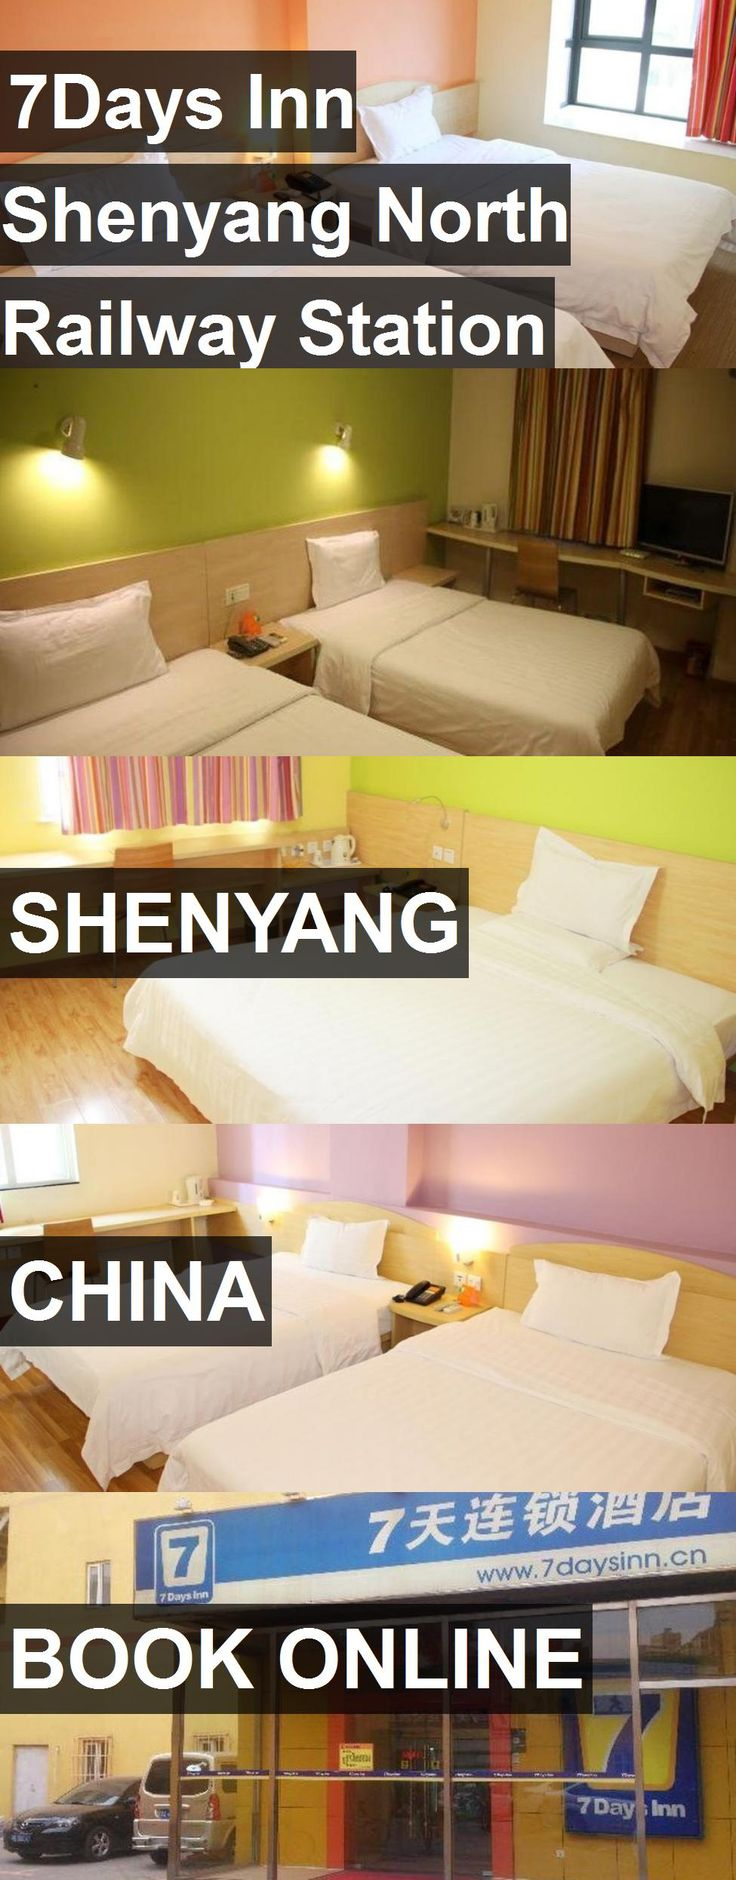 Hotel 7Days Inn Shenyang North Railway Station in Shenyang, China. For more information, photos, reviews and best prices please follow the link. #China #Shenyang #hotel #travel #vacation